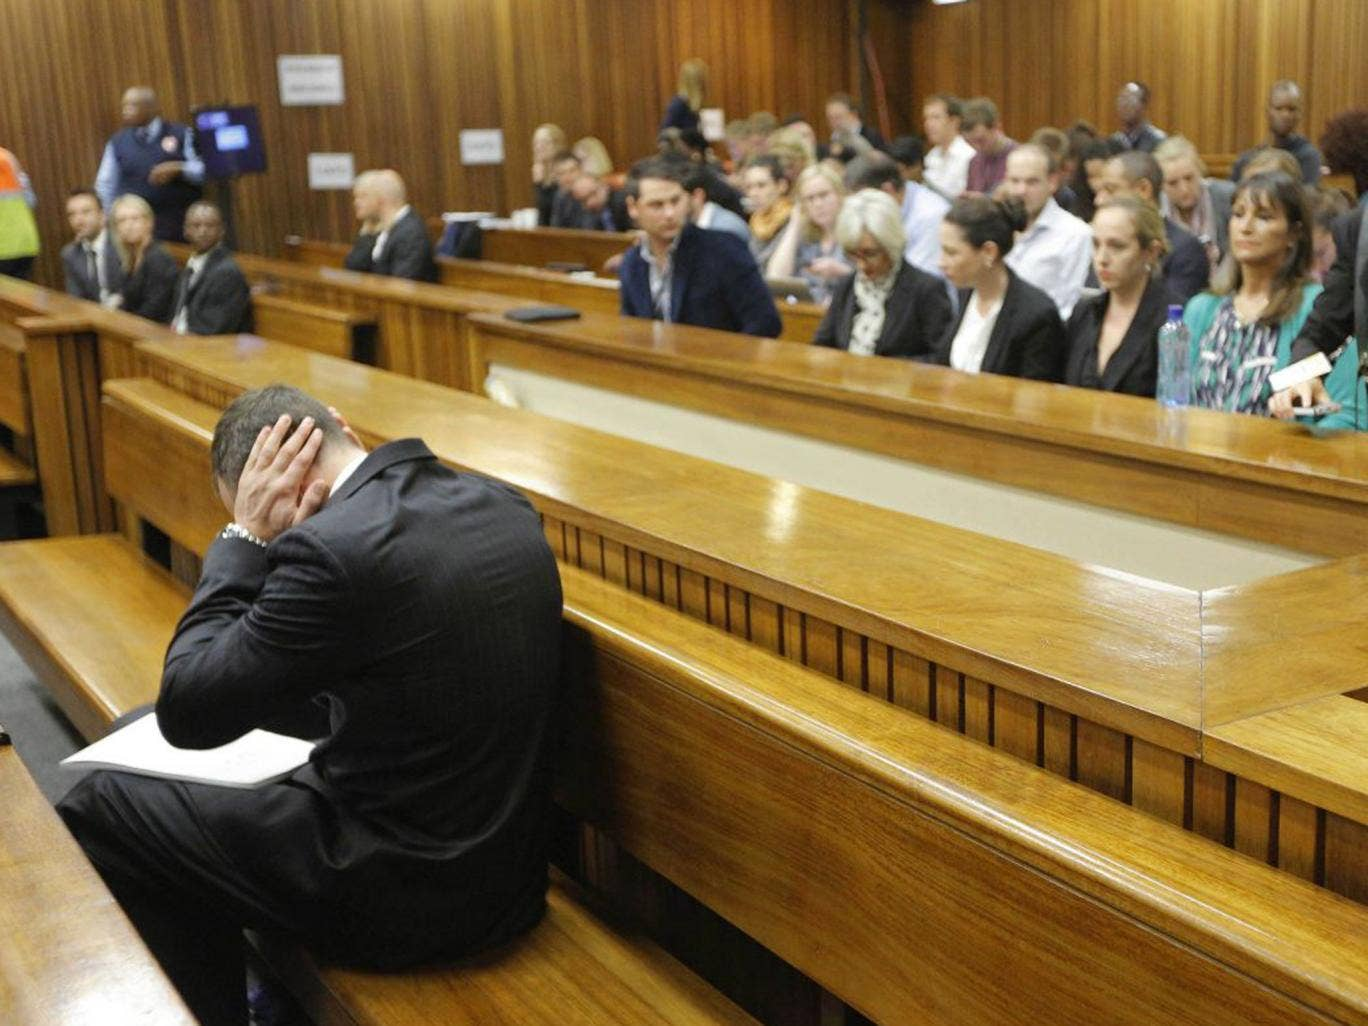 Oscar Pistorius blocks his ears inside the high court on the second day of his trial in Pretoria, South Africa